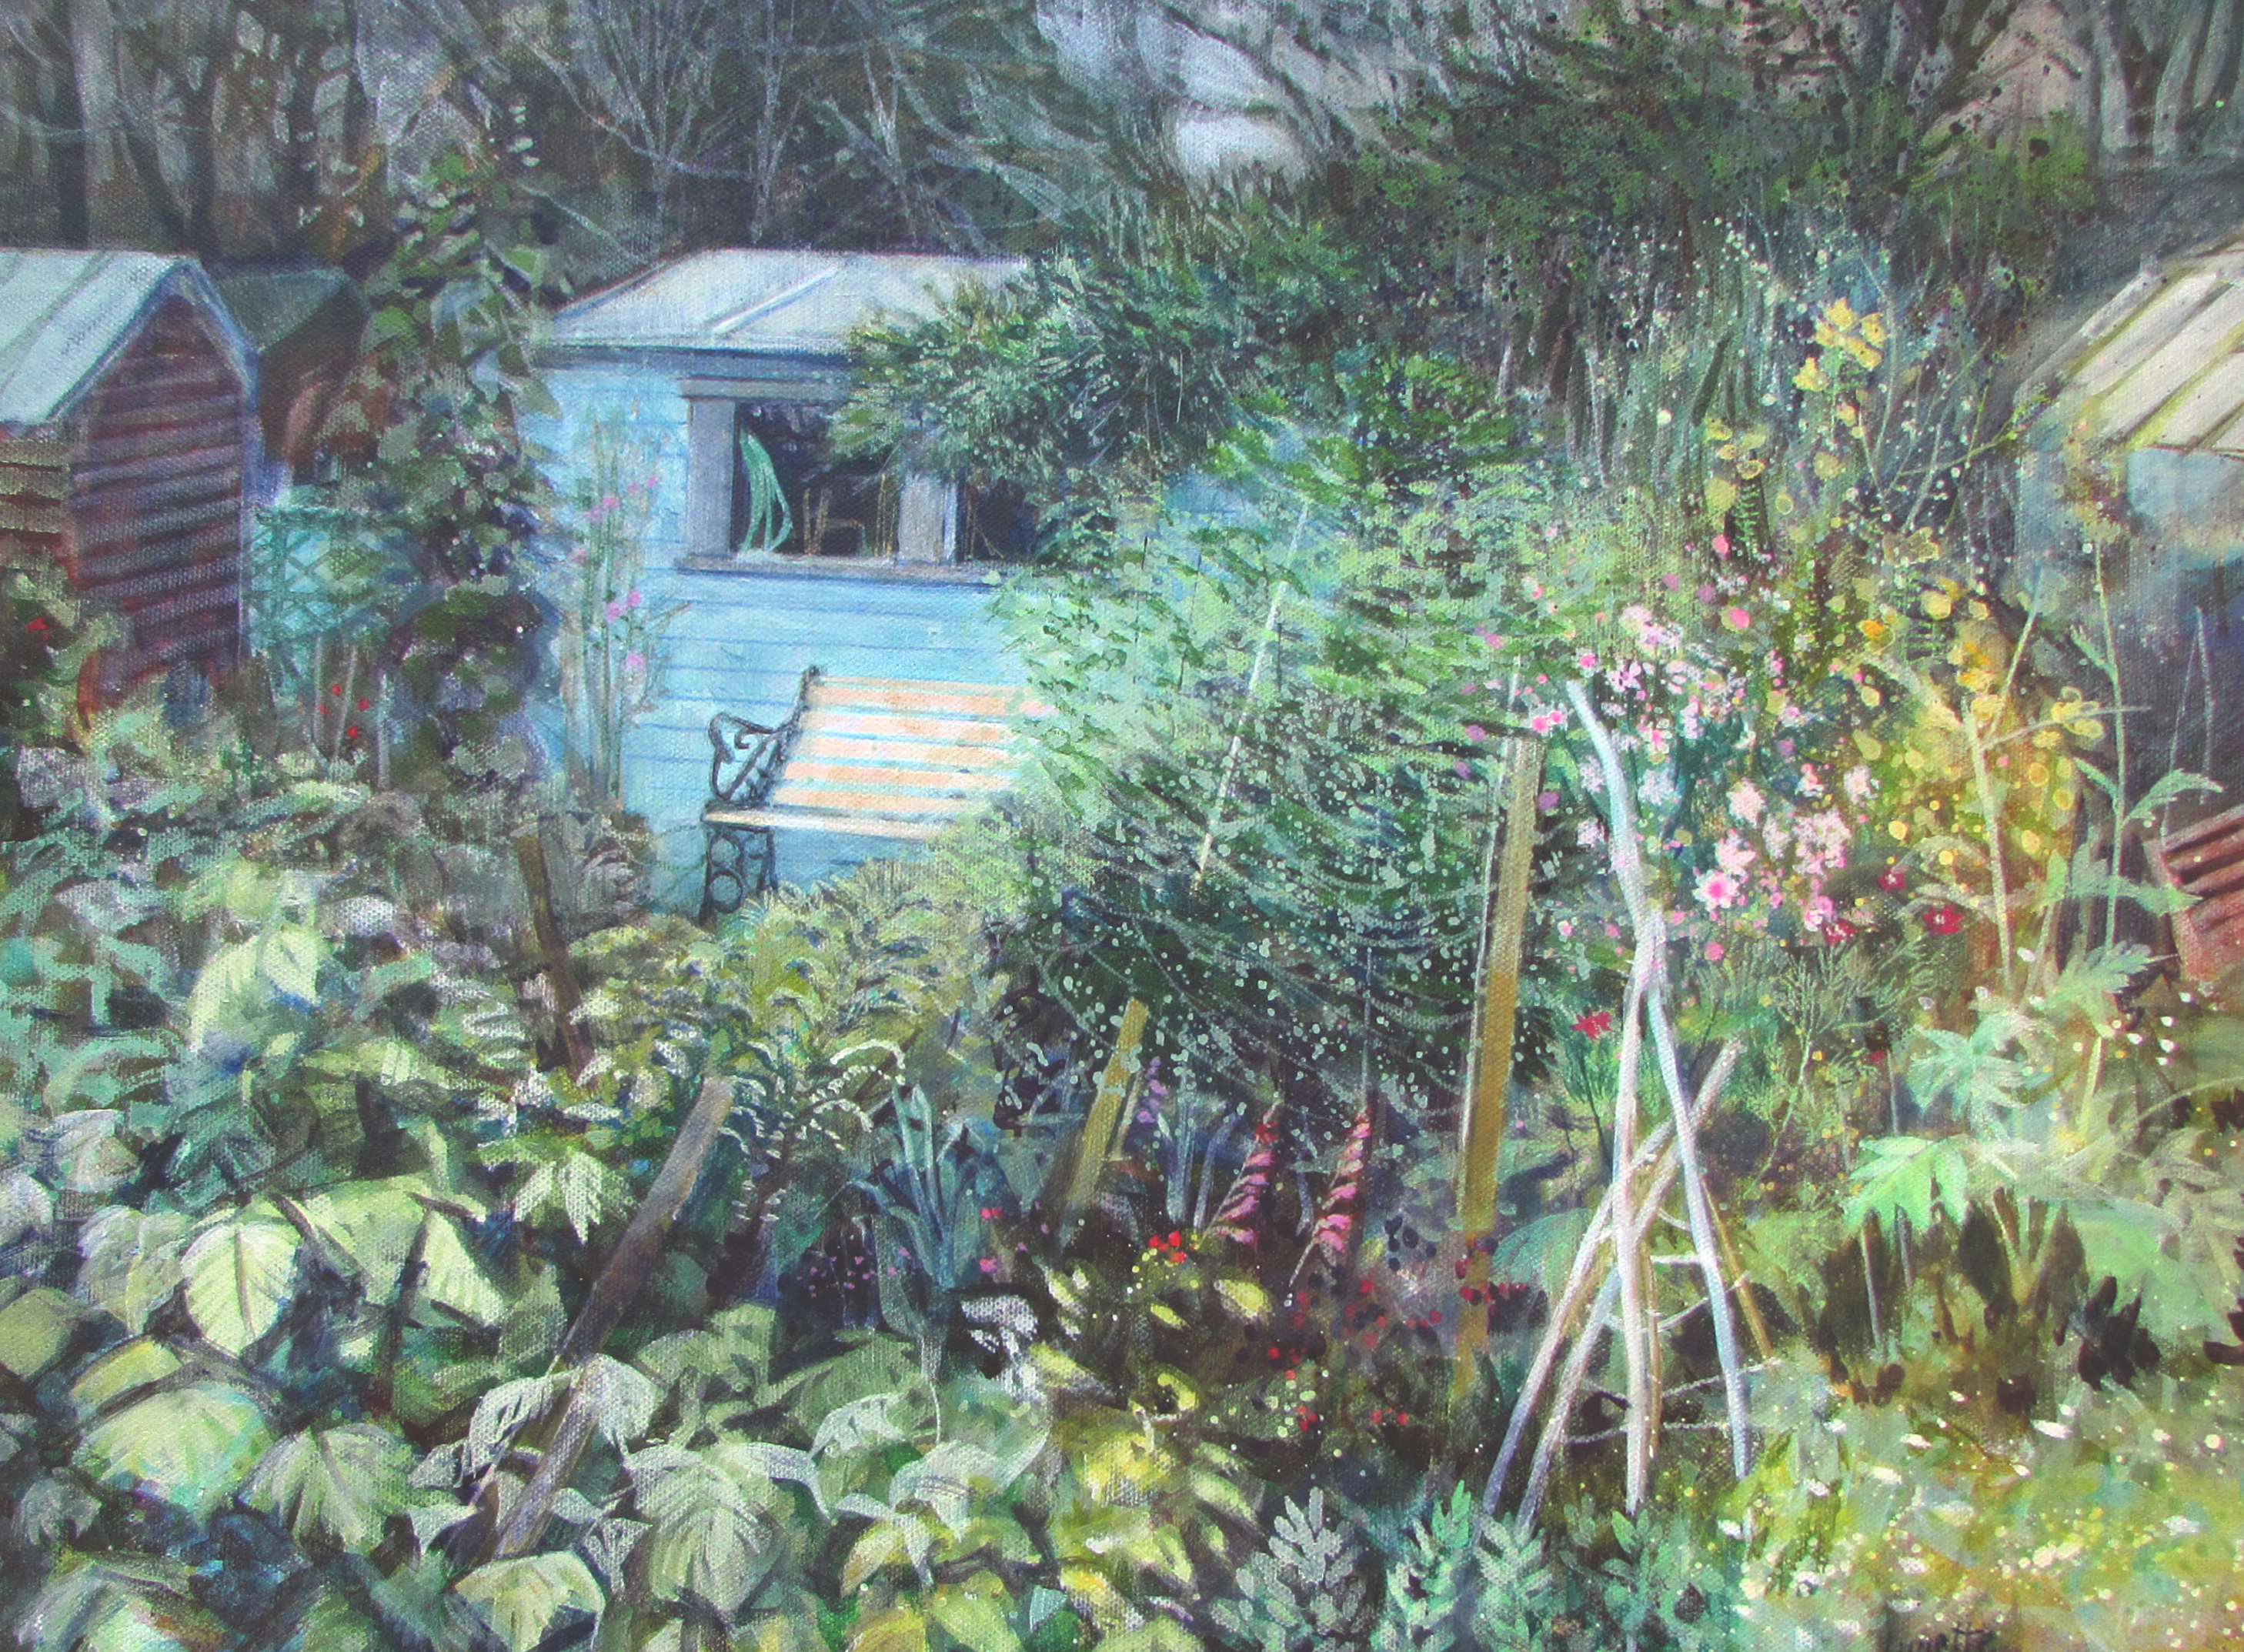 Blue Shed, Allotment